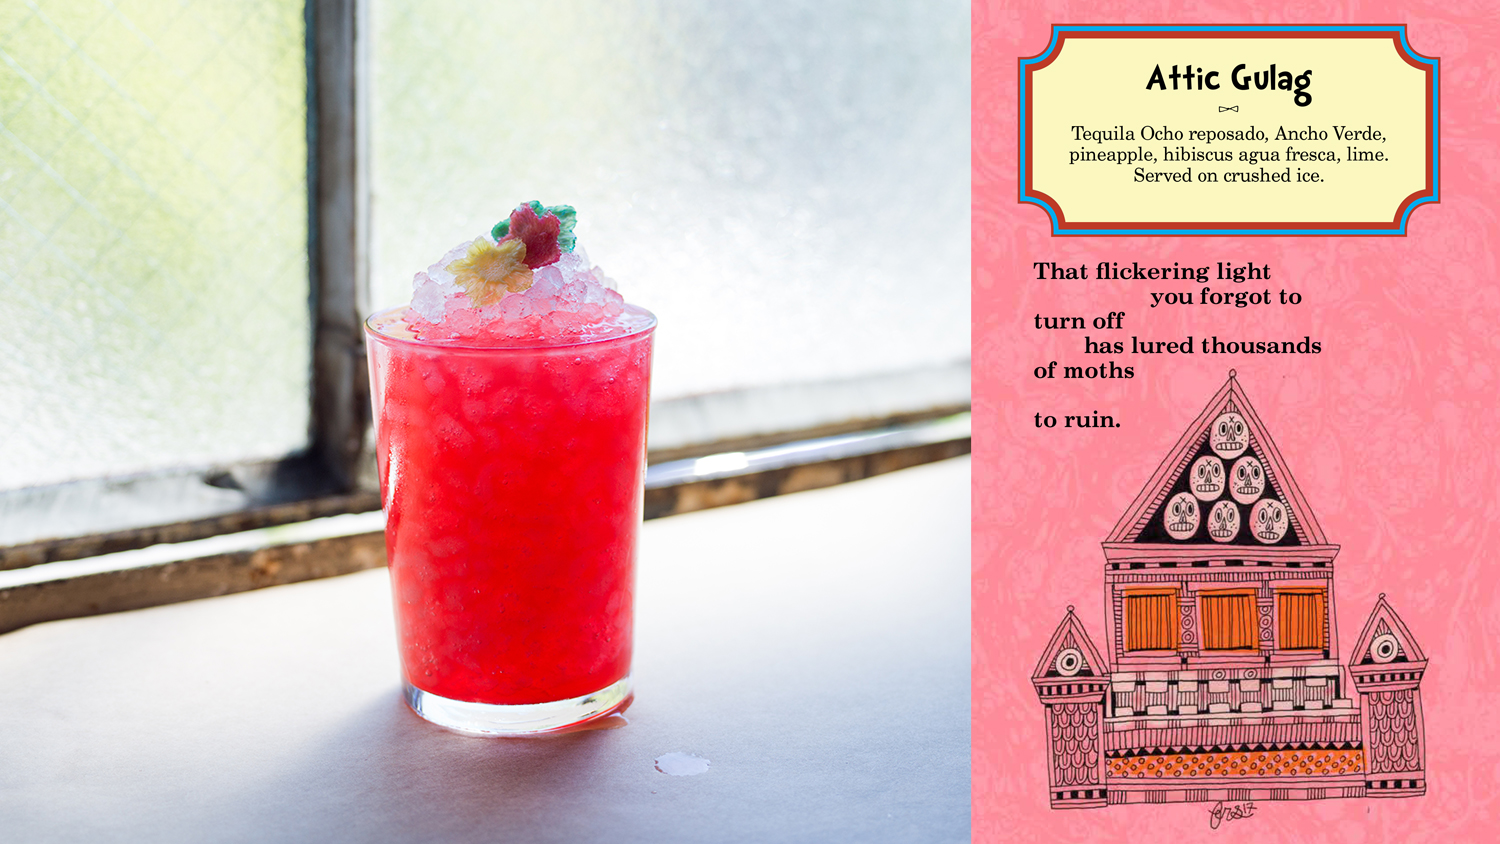 attic gulag from trick dog bar crazy menu drinks